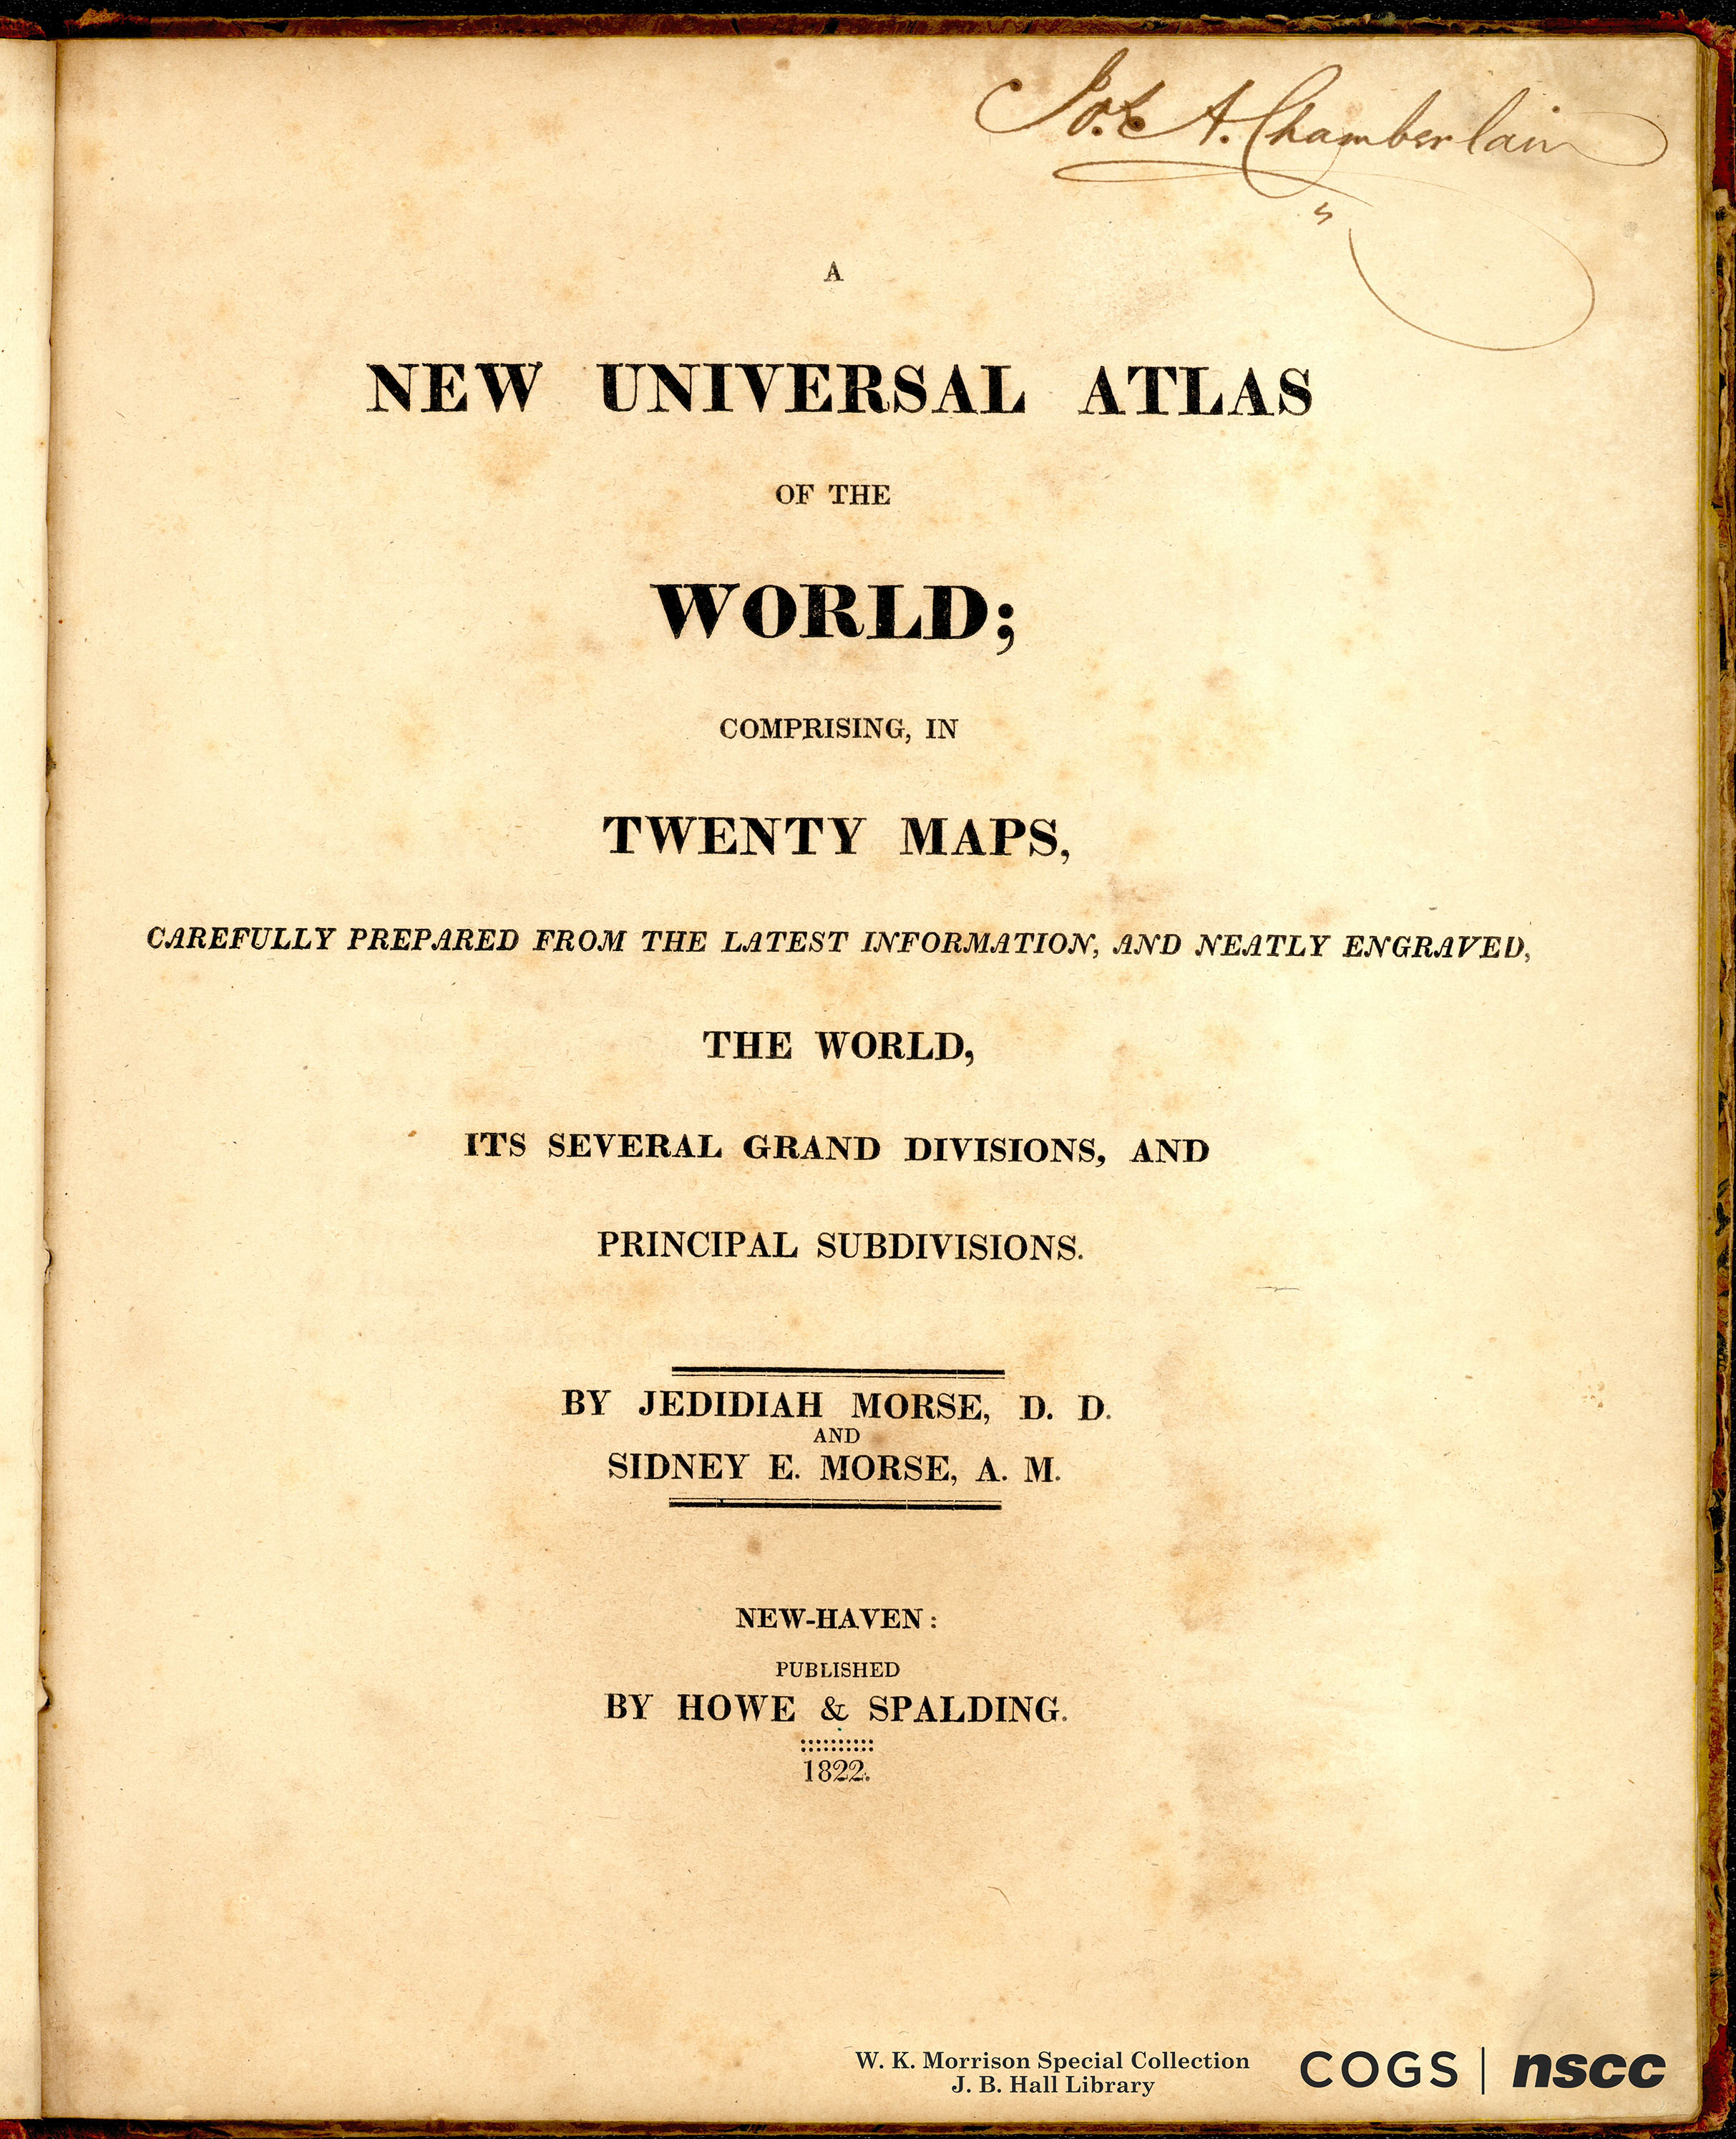 A NEW UNIVERSAL ATLAS OF THE WORLD